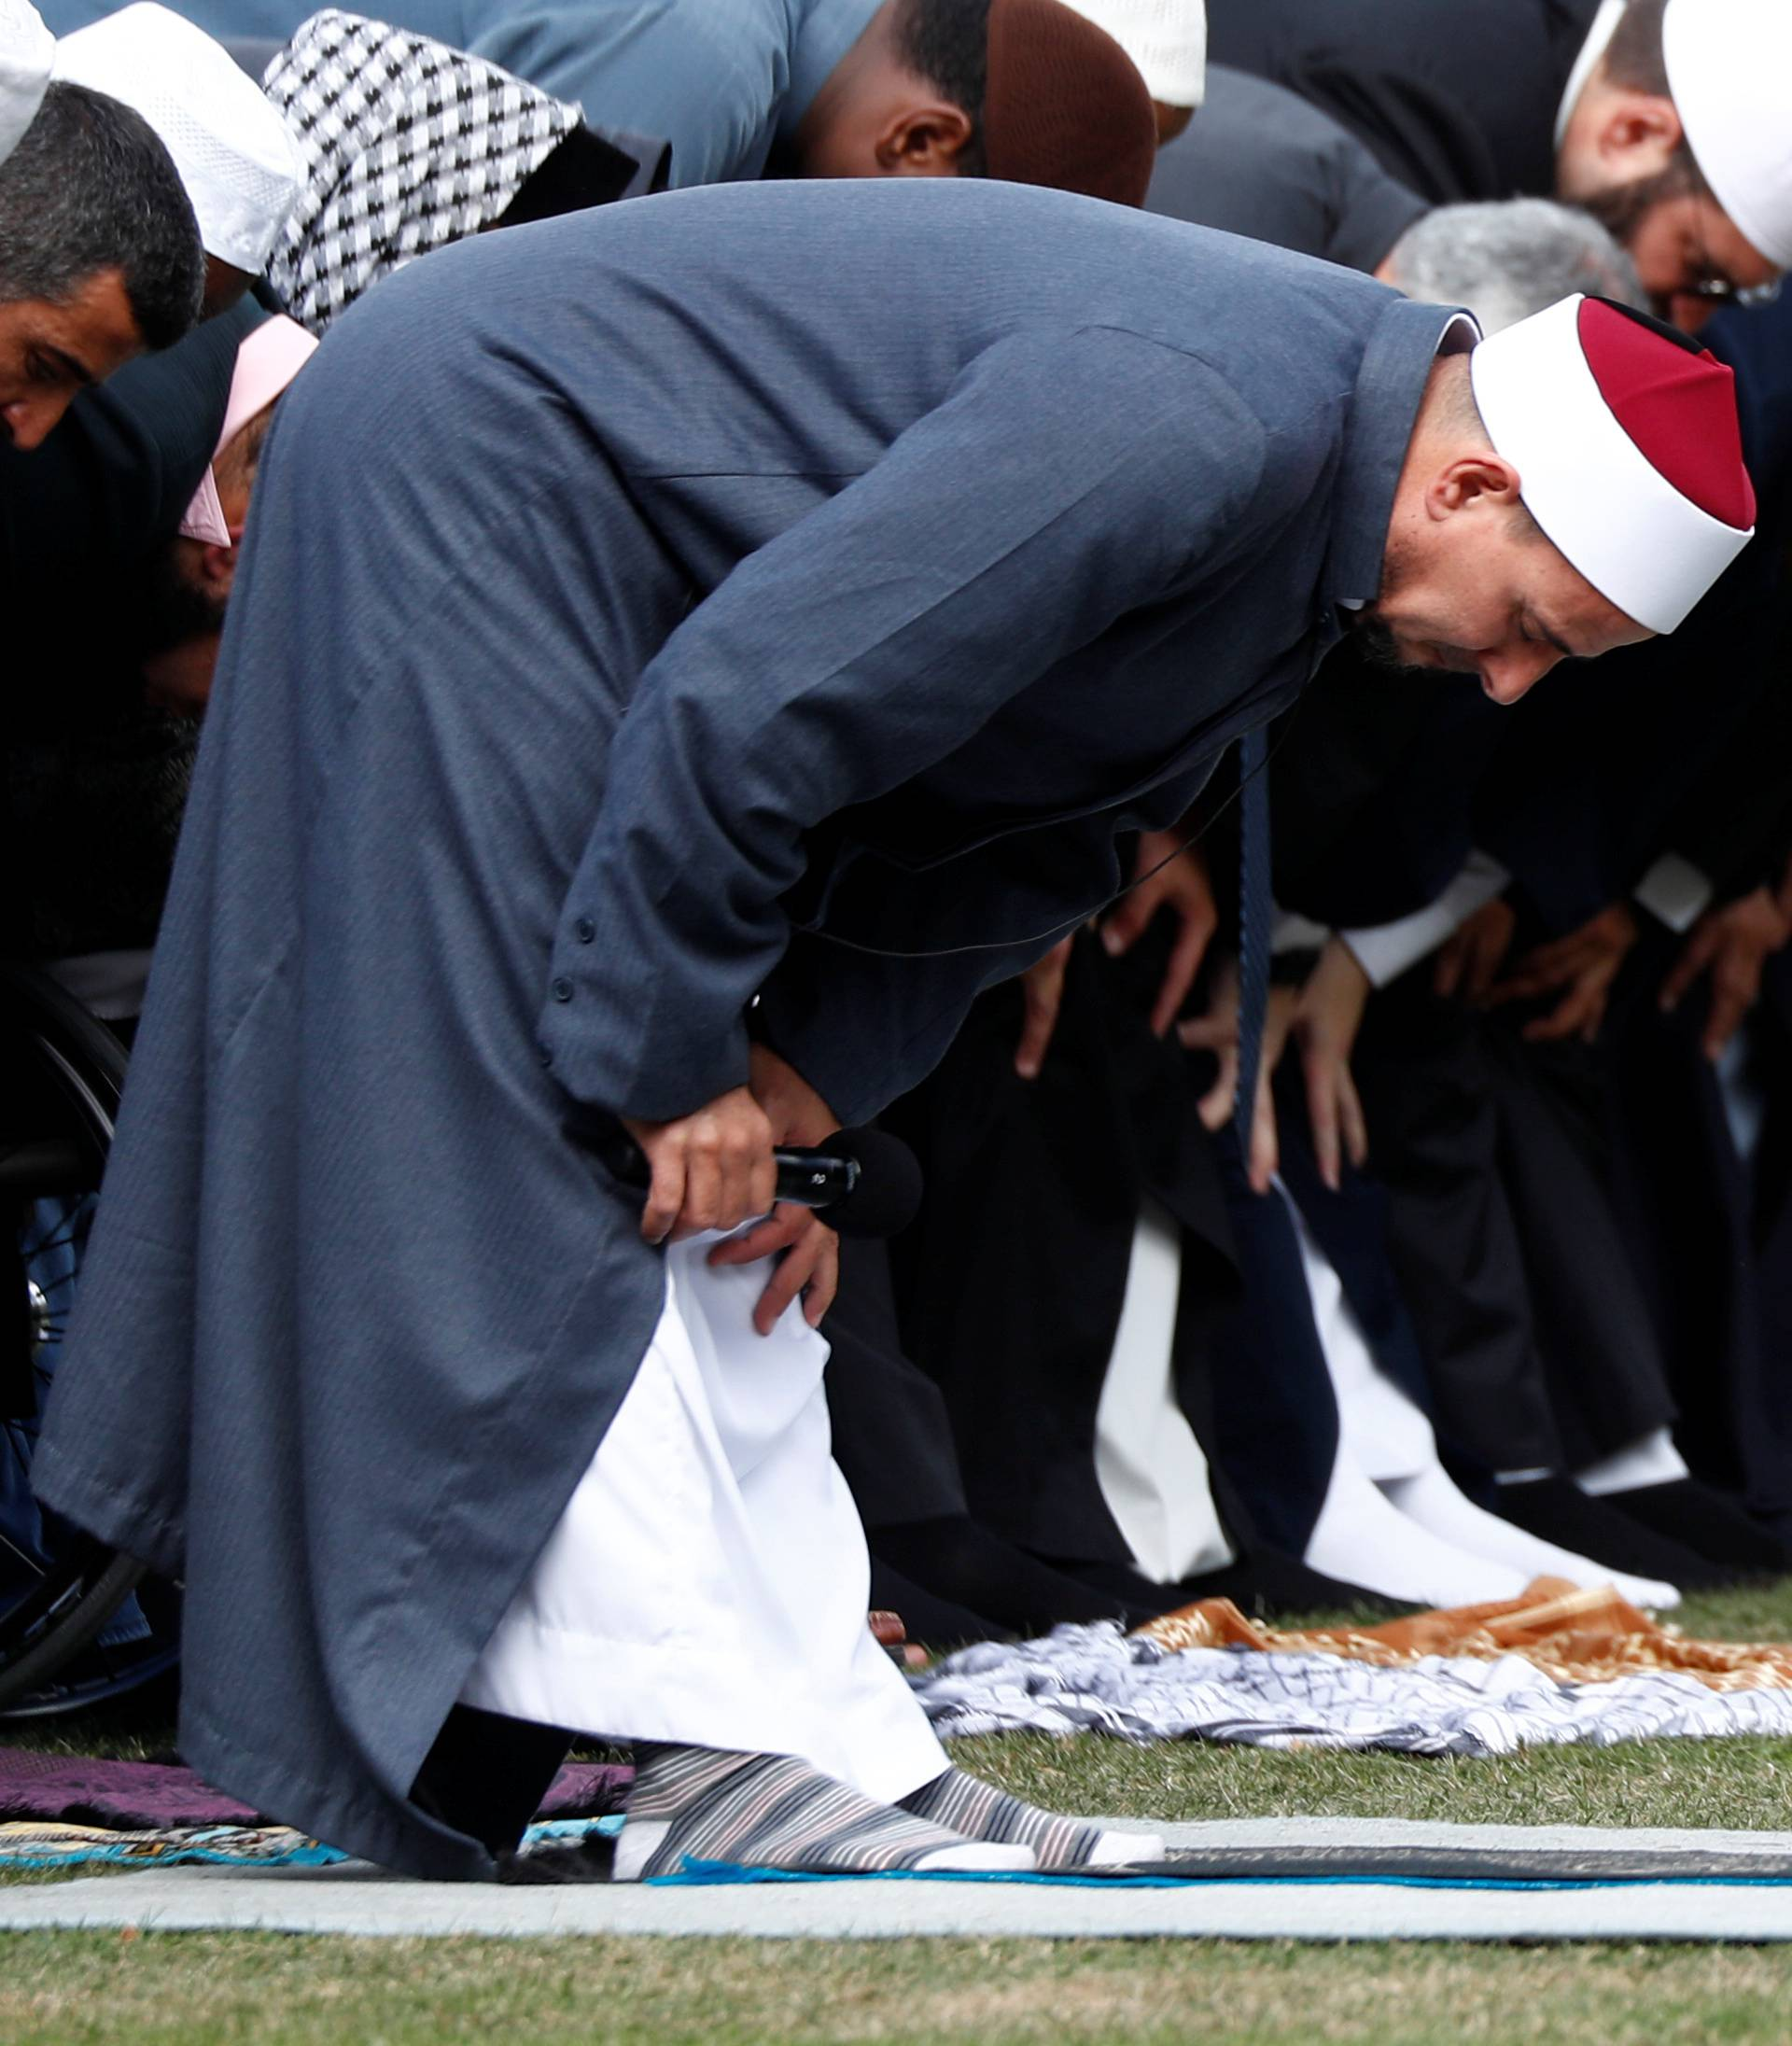 Imam Gamal Fouda leads a Friday prayer at Hagley Park outside Al-Noor mosque in Christchurch, New Zealand